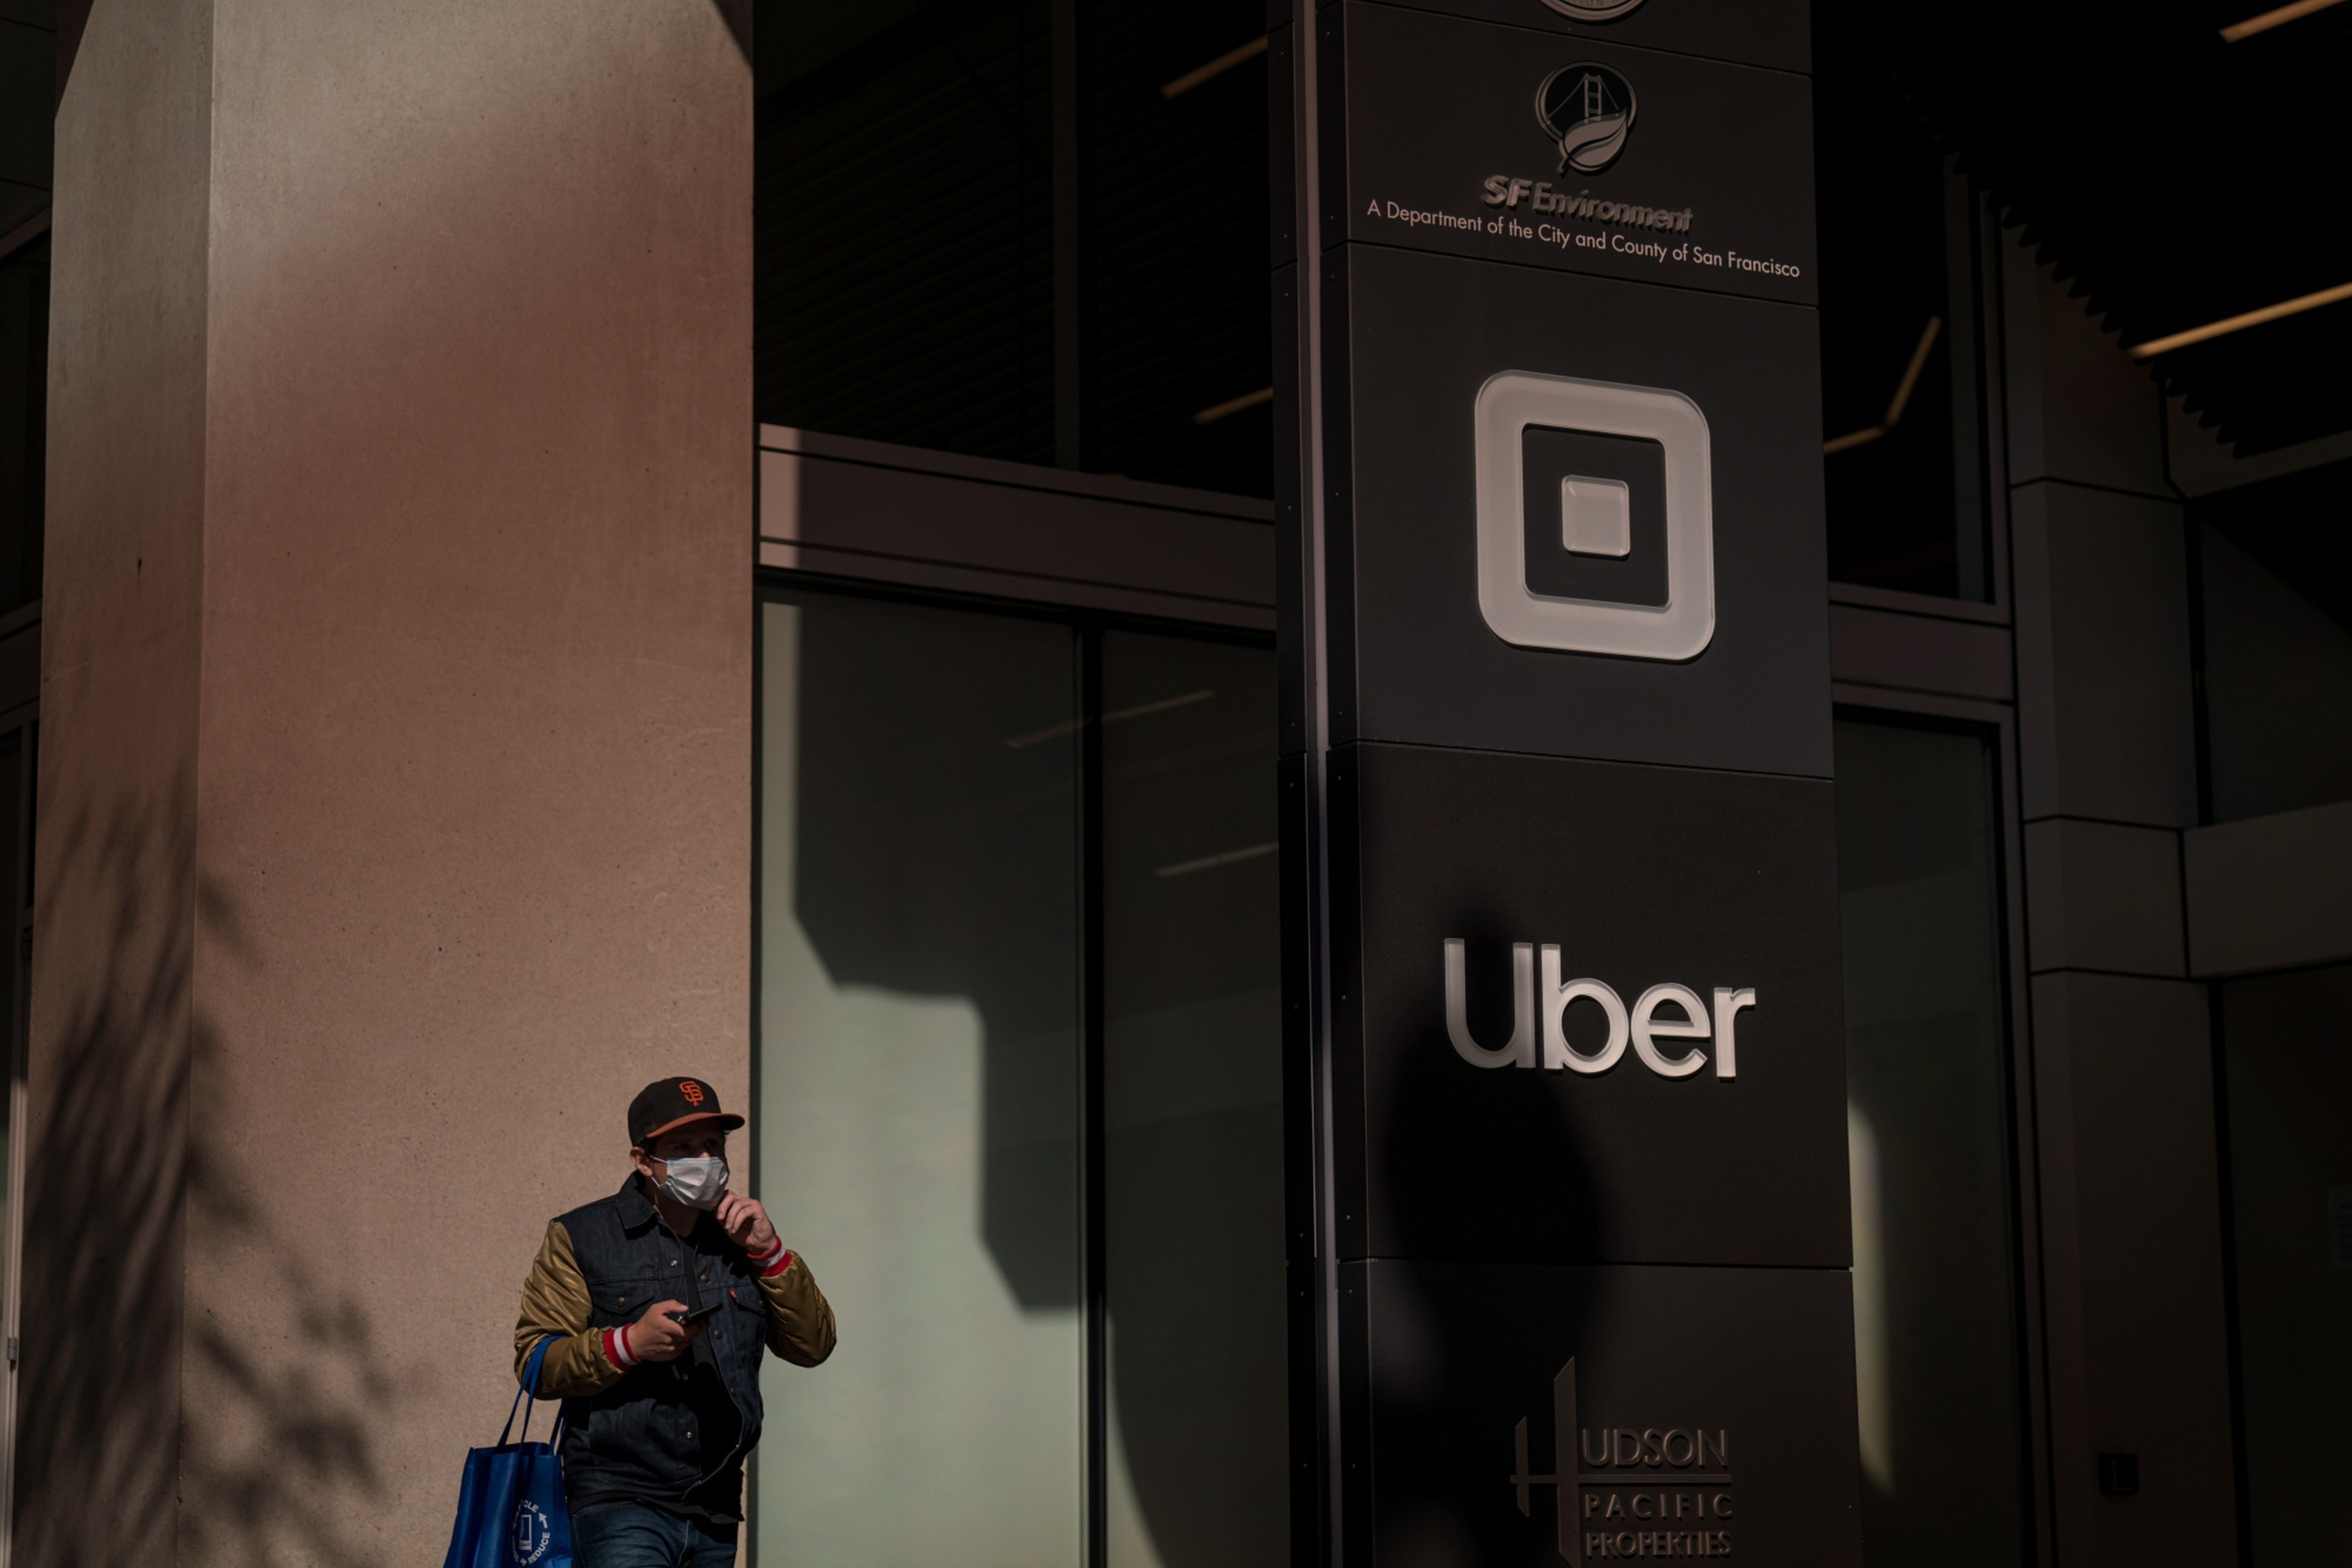 Uber lays off 3,700 workers and The New York Times foresees an ad revenue cliff: Thursday Wake-Up Call